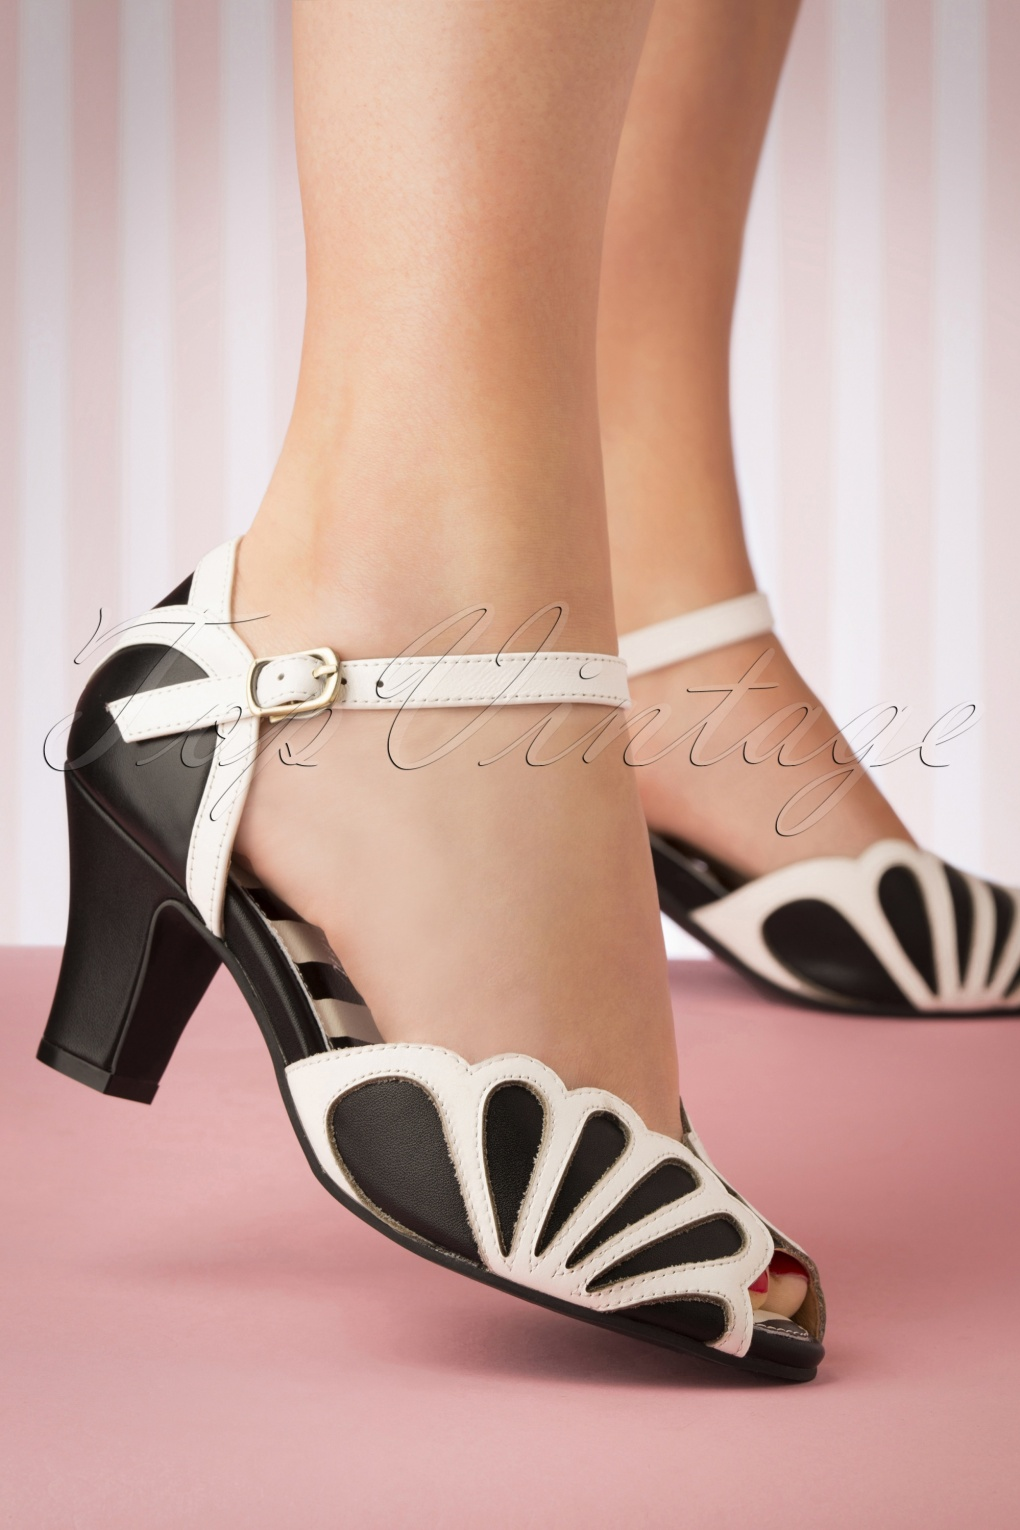 Vintage 1920s Shoe Styles 20s Ava Fly Sandals in Black and White £115.97 AT vintagedancer.com